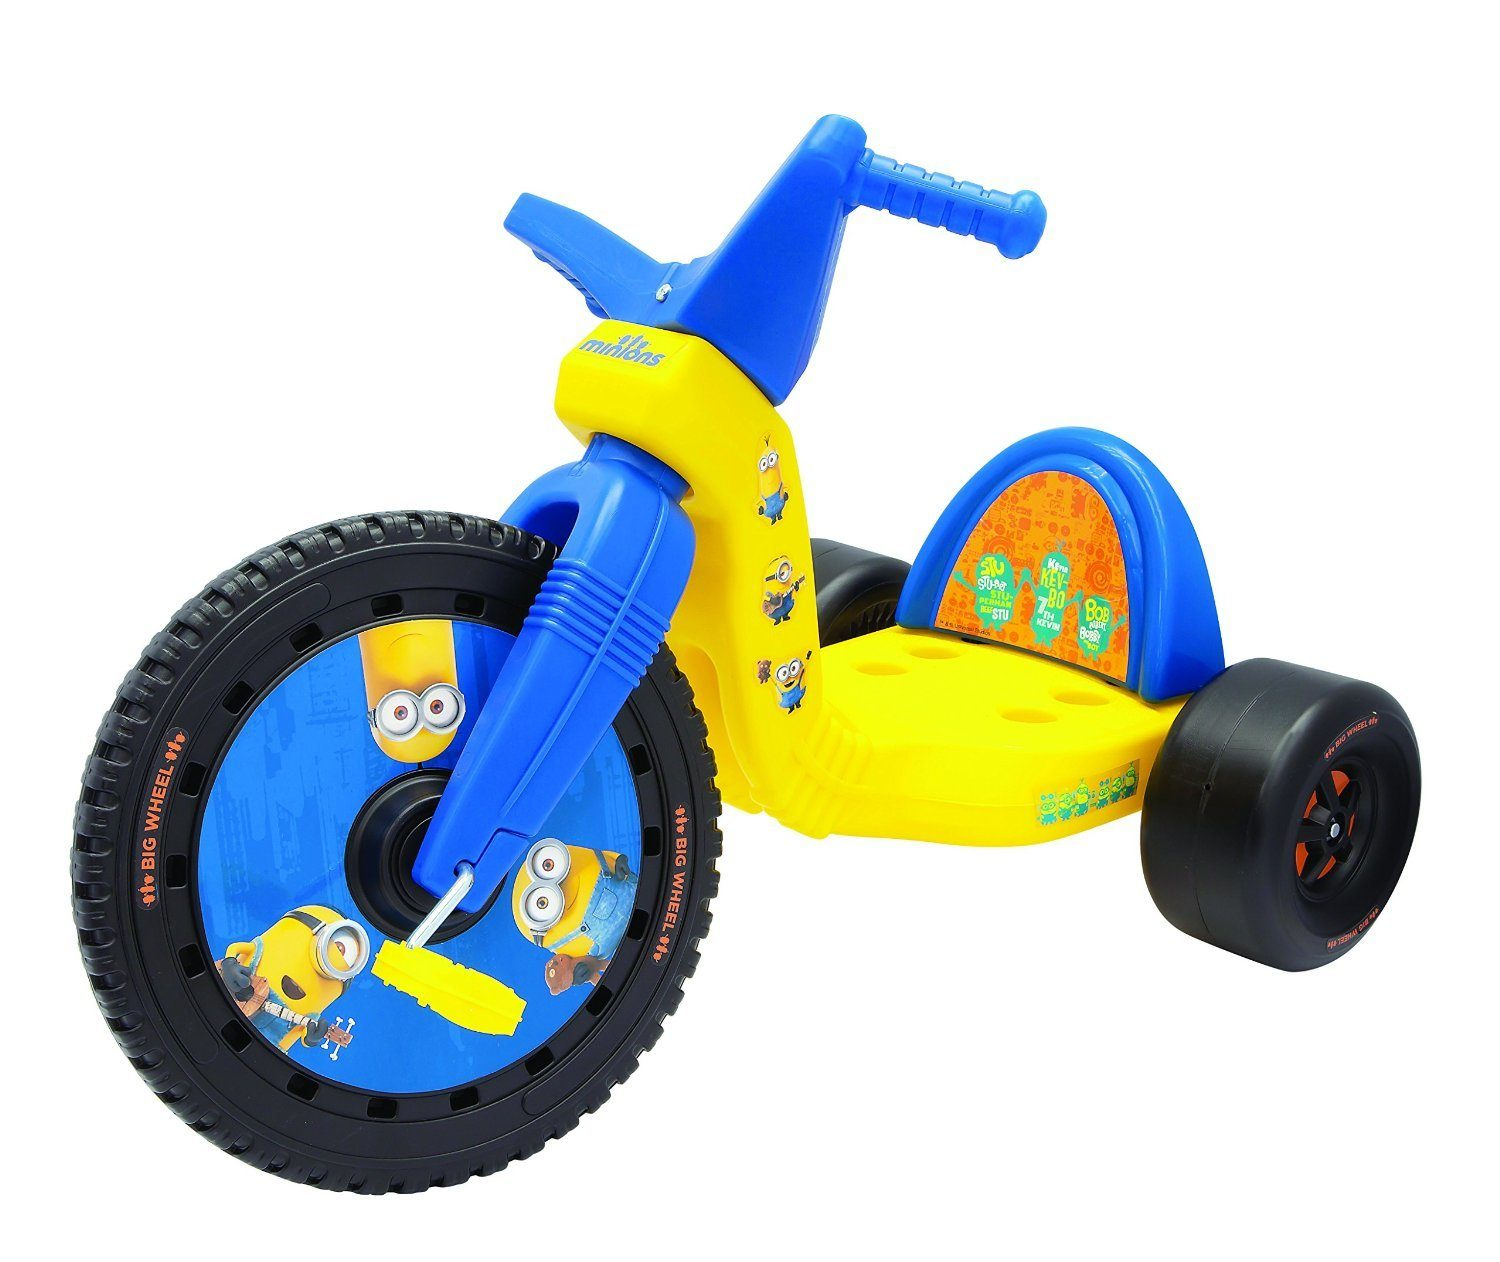 """Minions Big Wheel, 16"""" Only $39.97 With FREE Shipping (Reg. $59.99)!"""